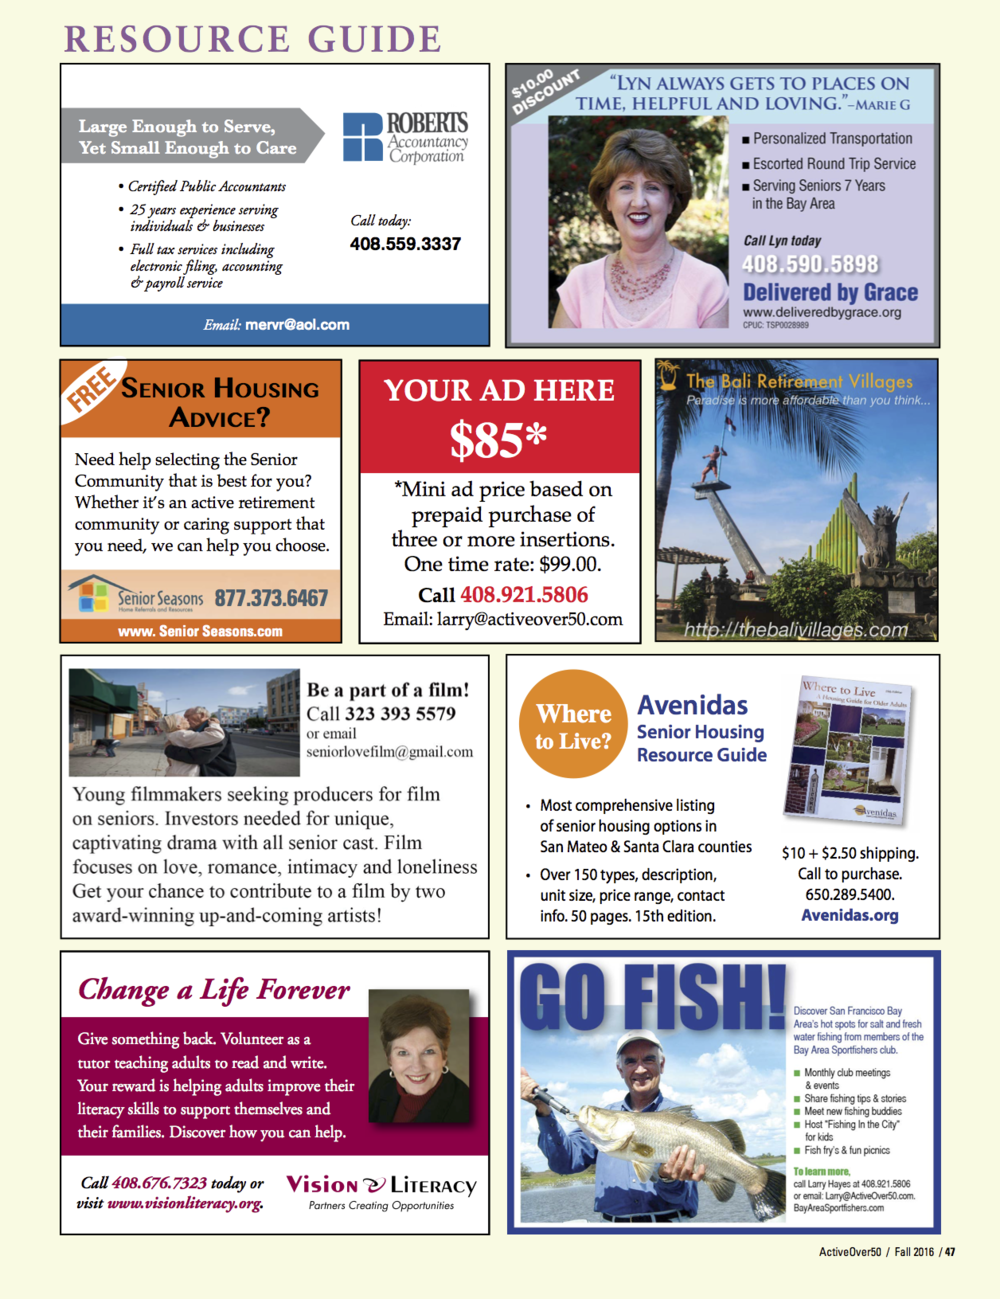 Advertisement featured in the Fall 2016 issue of Active Over 50 Magazine